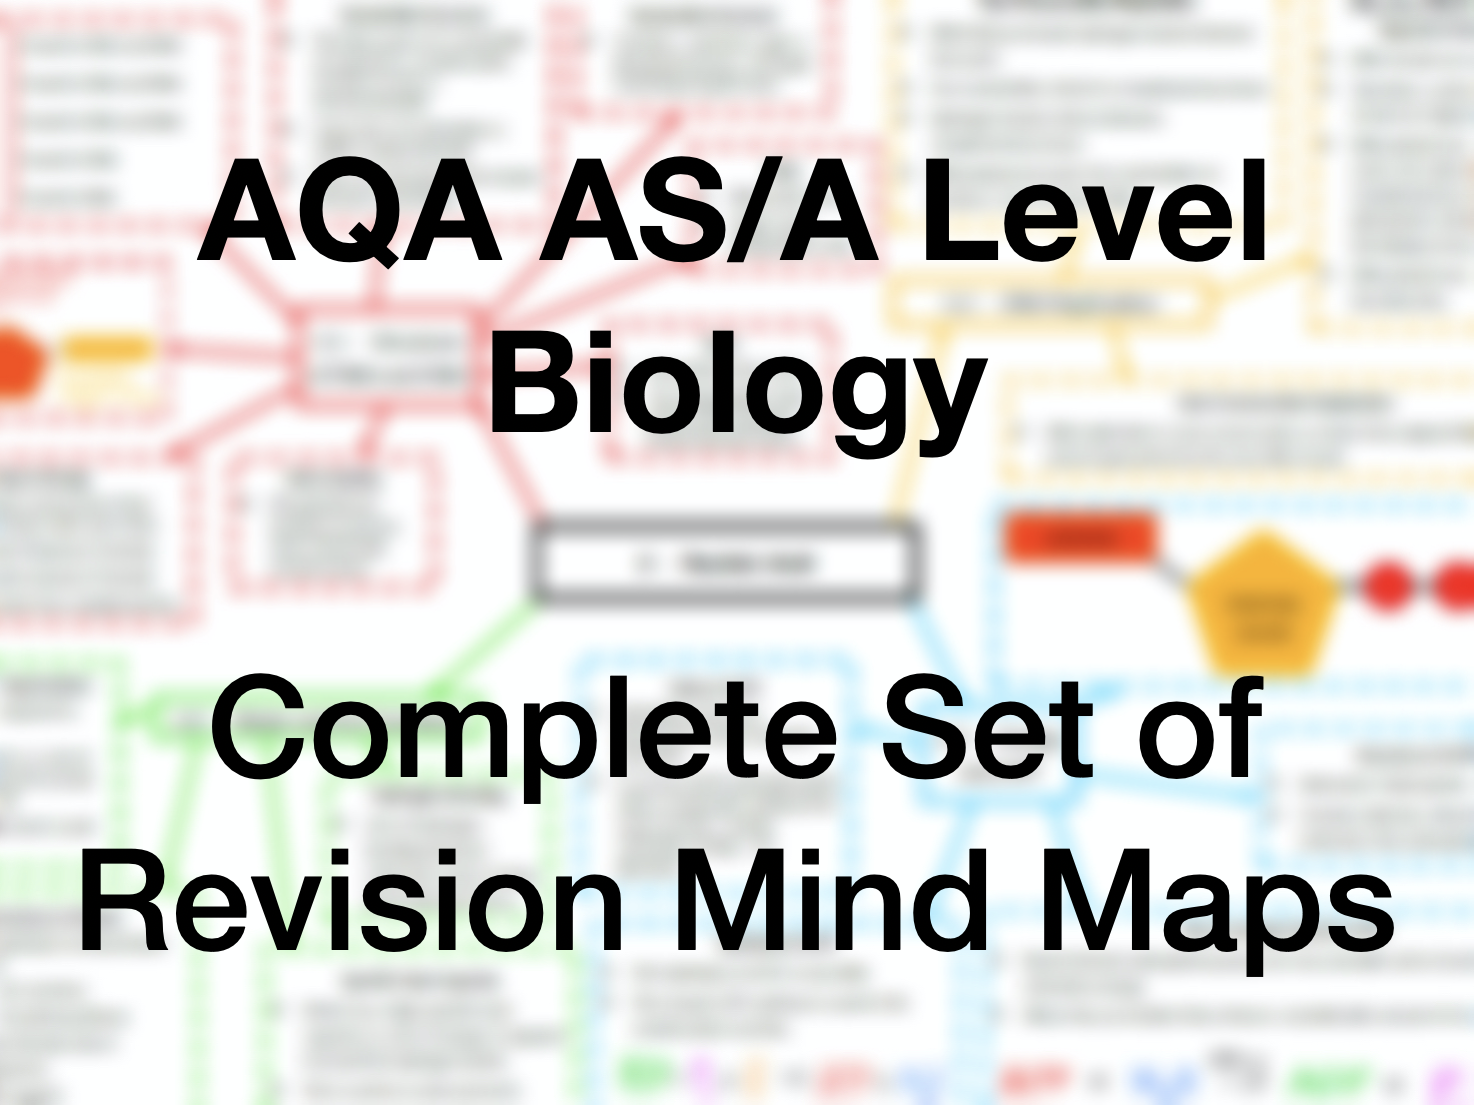 Complete Biology Revision Mind Map Set - AQA AS/A Level Biology (7041/7042)